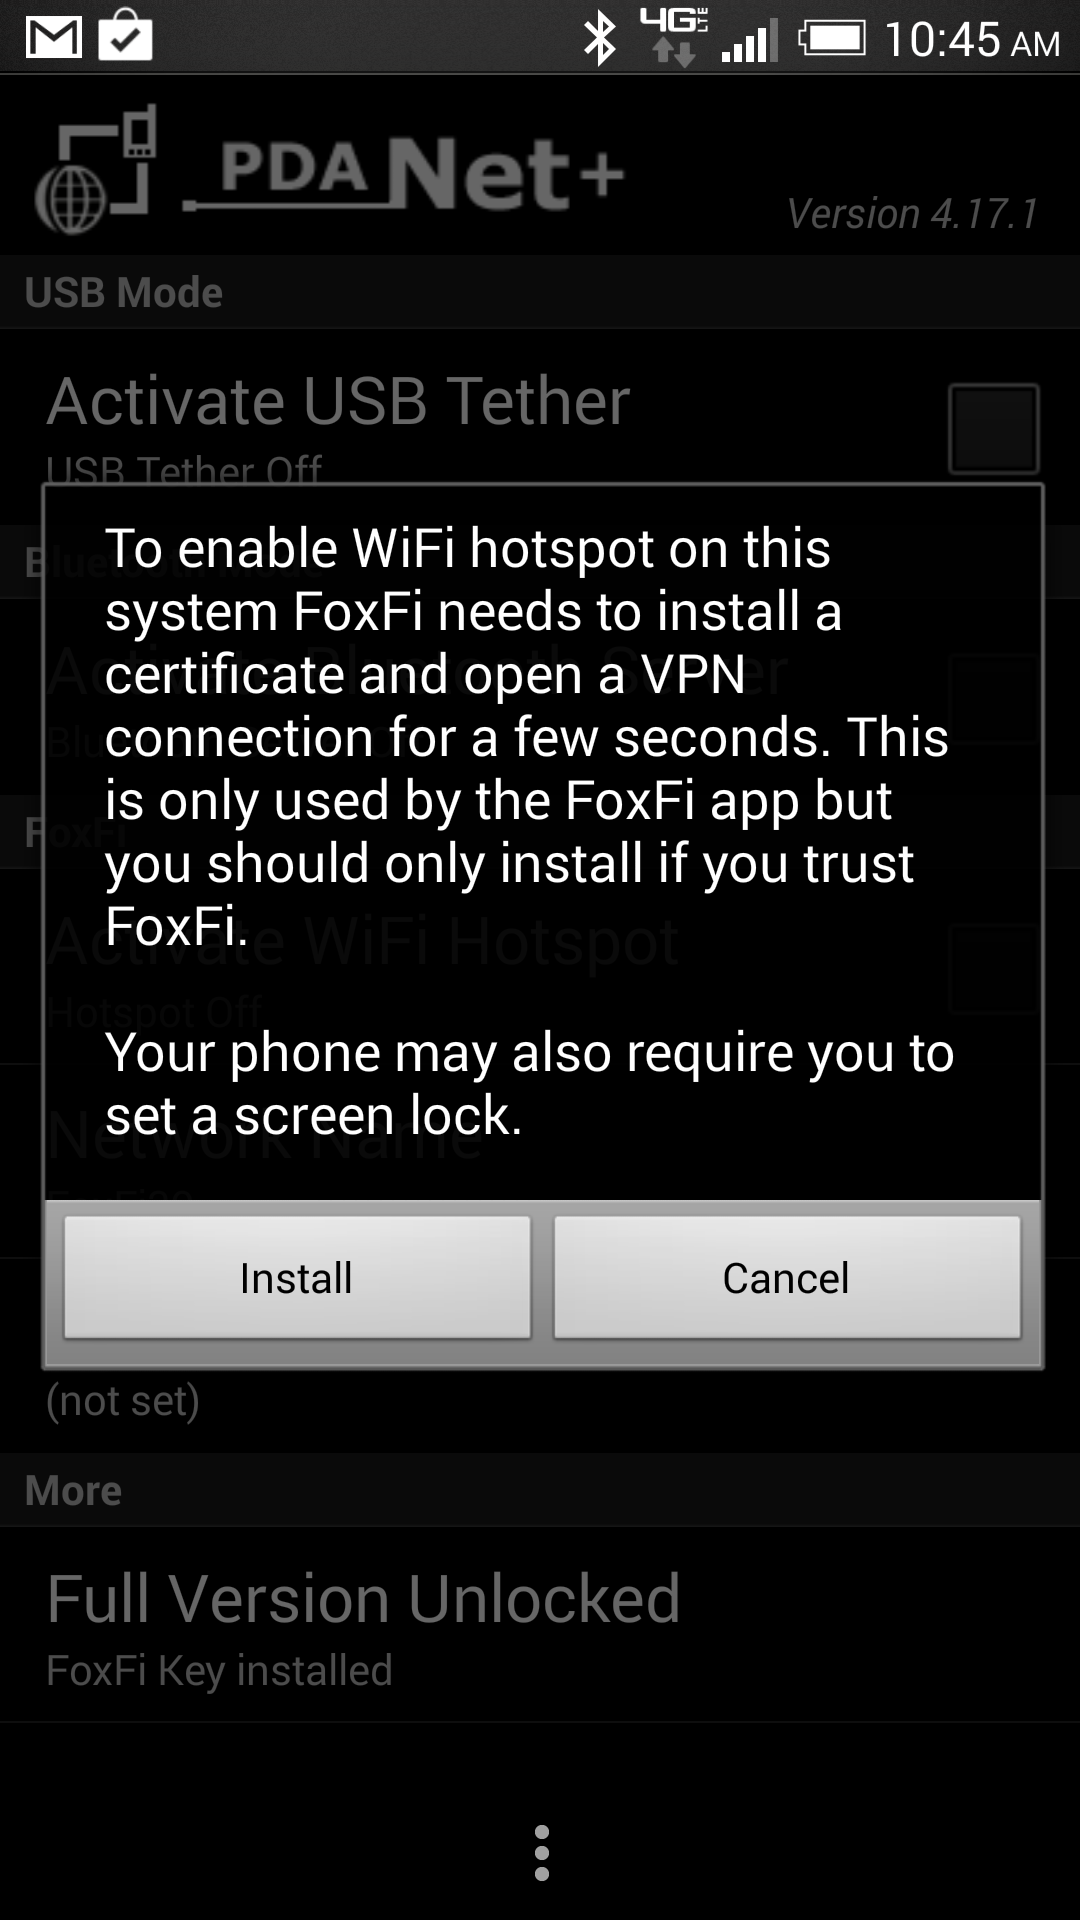 How to set up a wireless hotspot for tethering on Android to